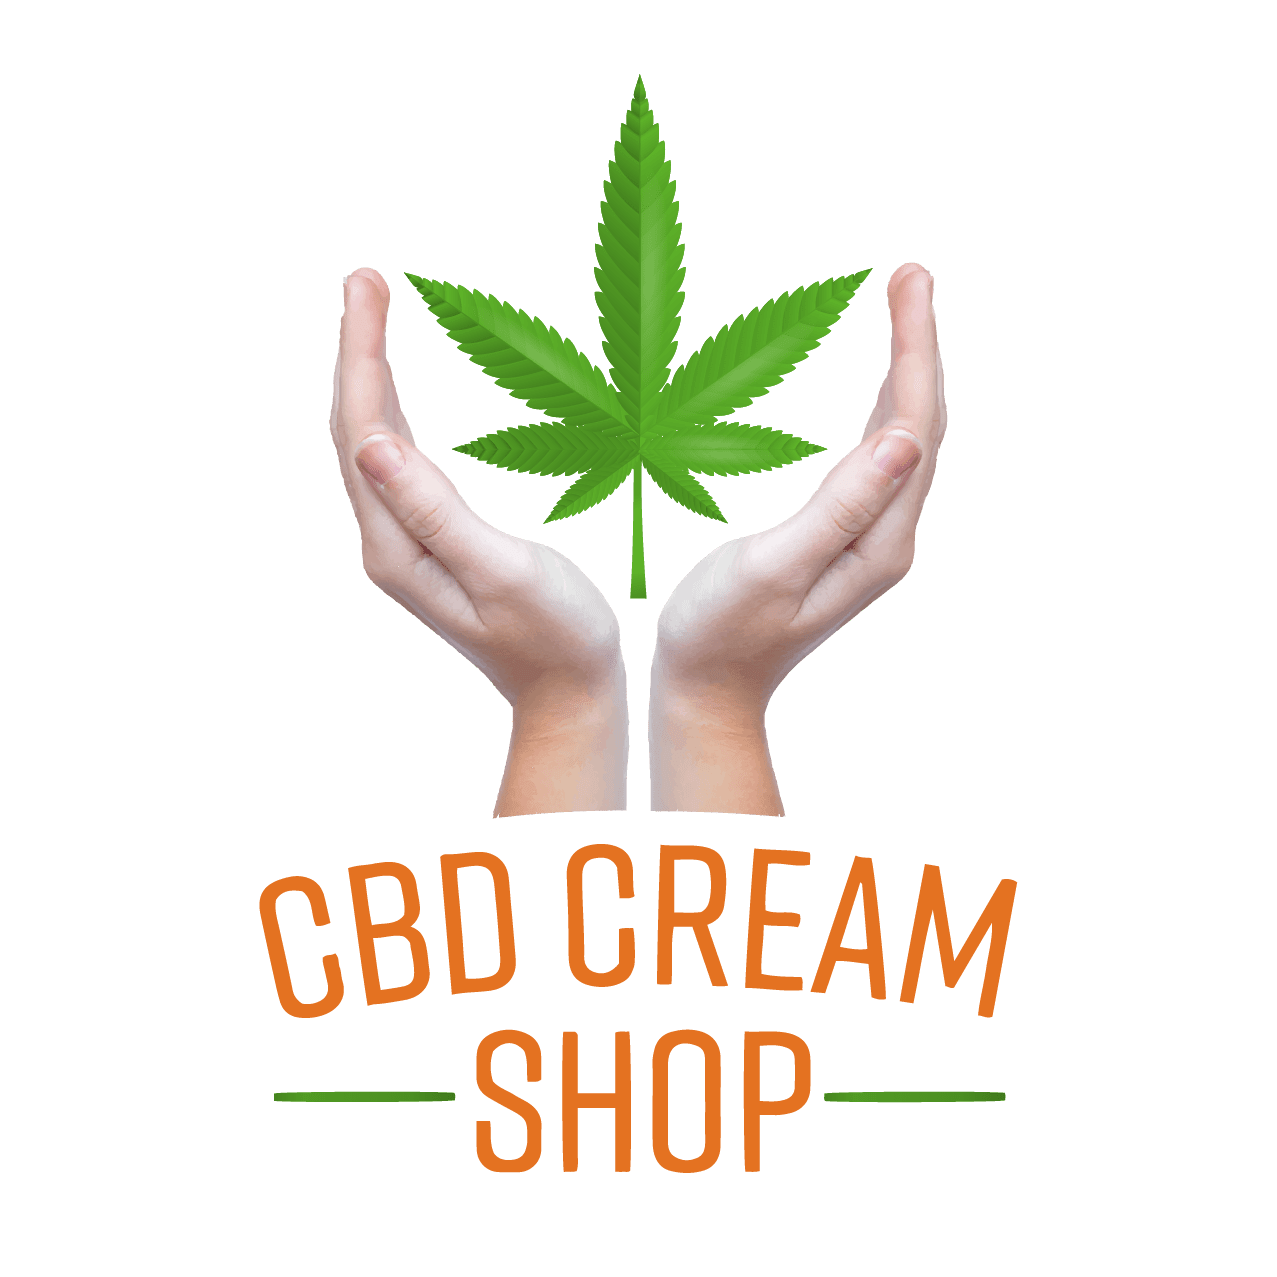 CBD Cream Shop